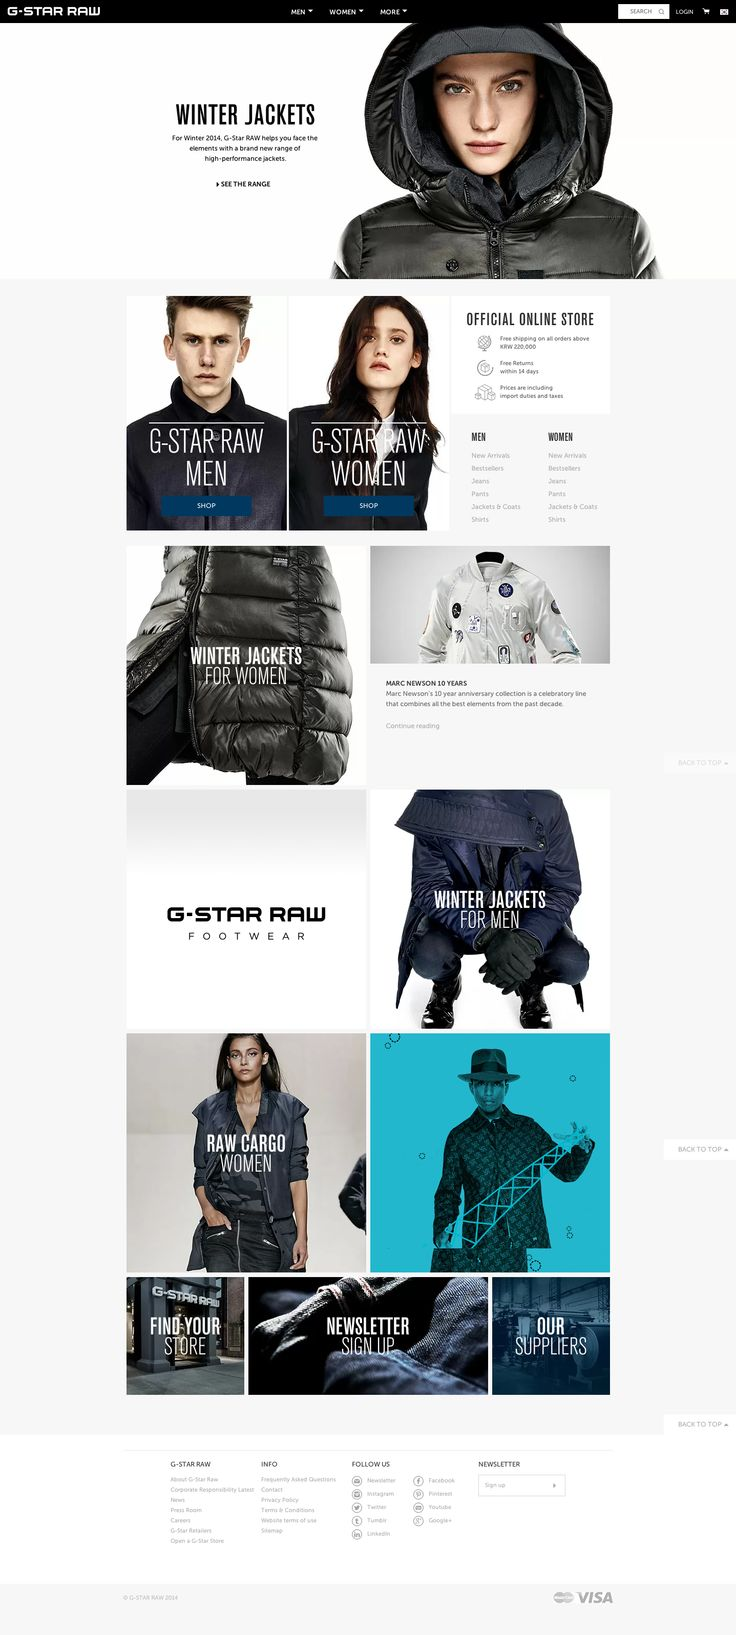 G-Star RAW | Official Brand Site - Shop The Collection